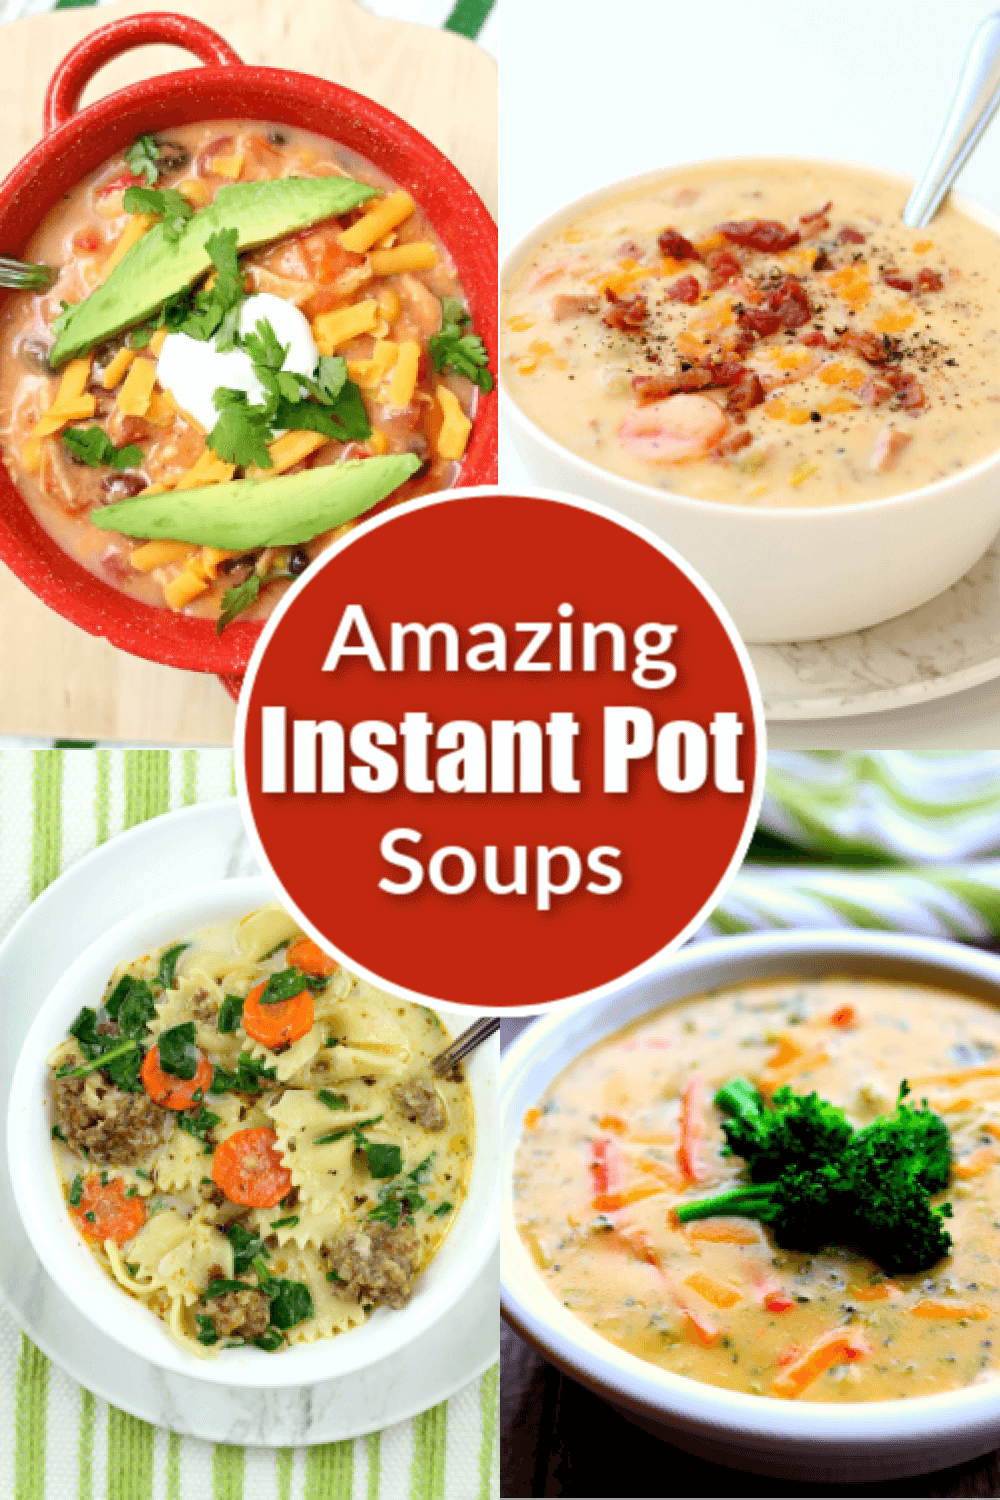 If your weather is getting a little chilly put on a pot of soup. These 20+ Instant Pot and slow cooker soups, stews and chilis are some of my absolute favorites! Plus the leftovers the next day taste so amazing. It's almost as if the flavors get better over time.